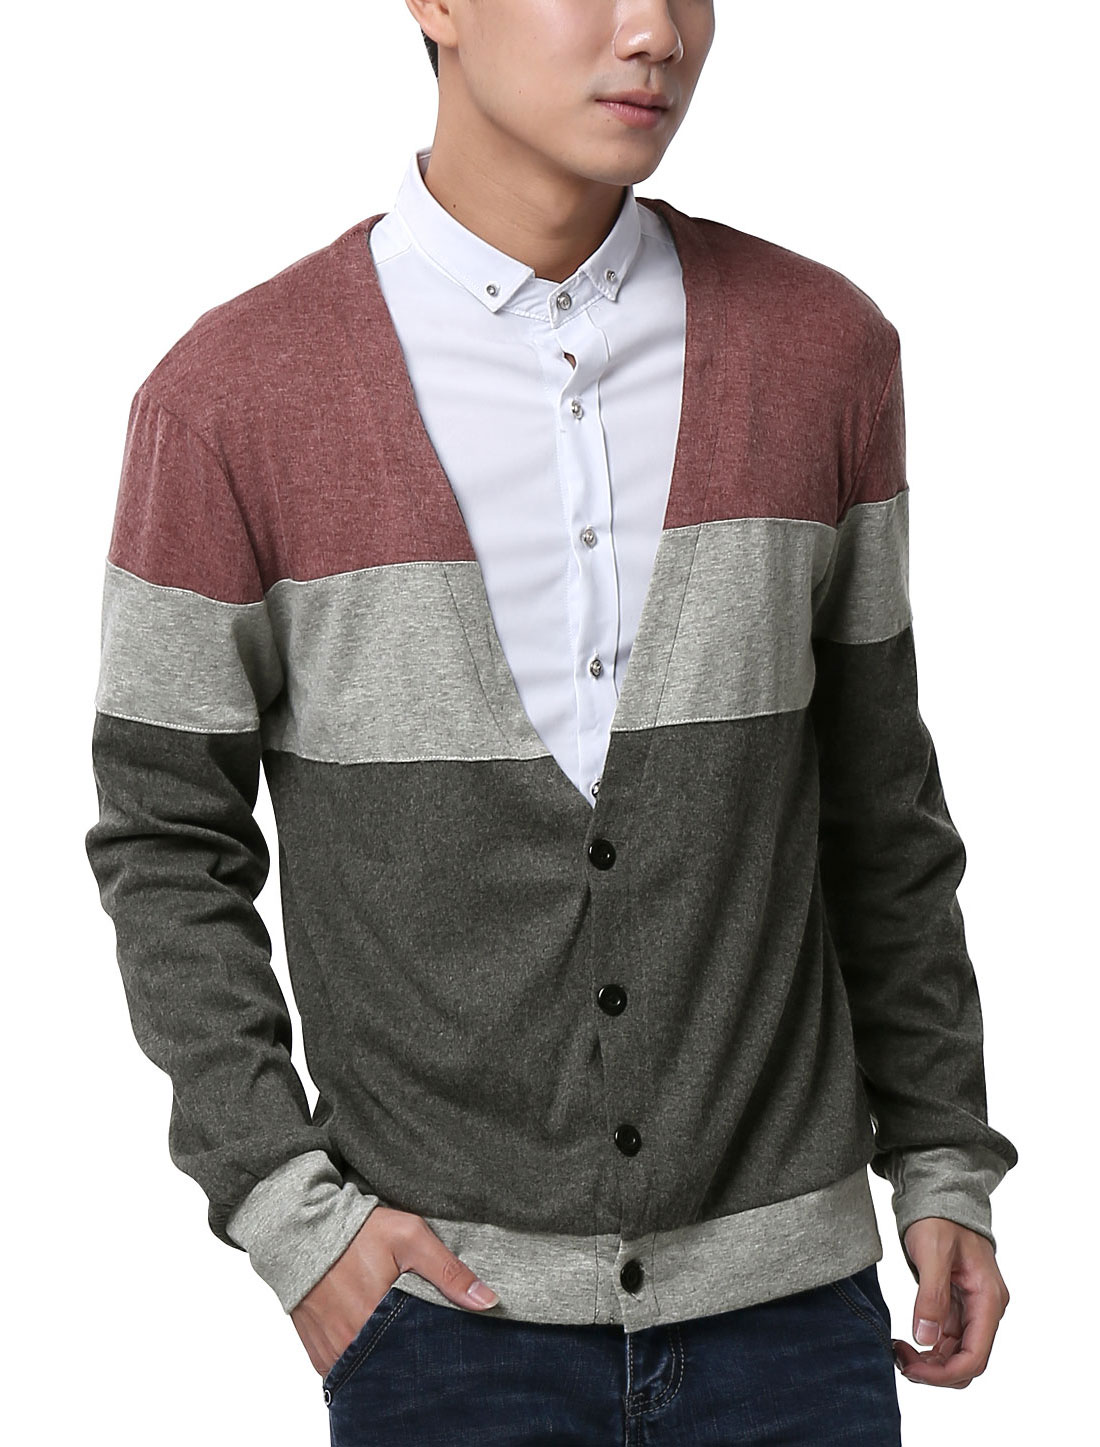 Mens Gray Burgundy Single Breasted Stretchy Long Sleeve Cardigan M